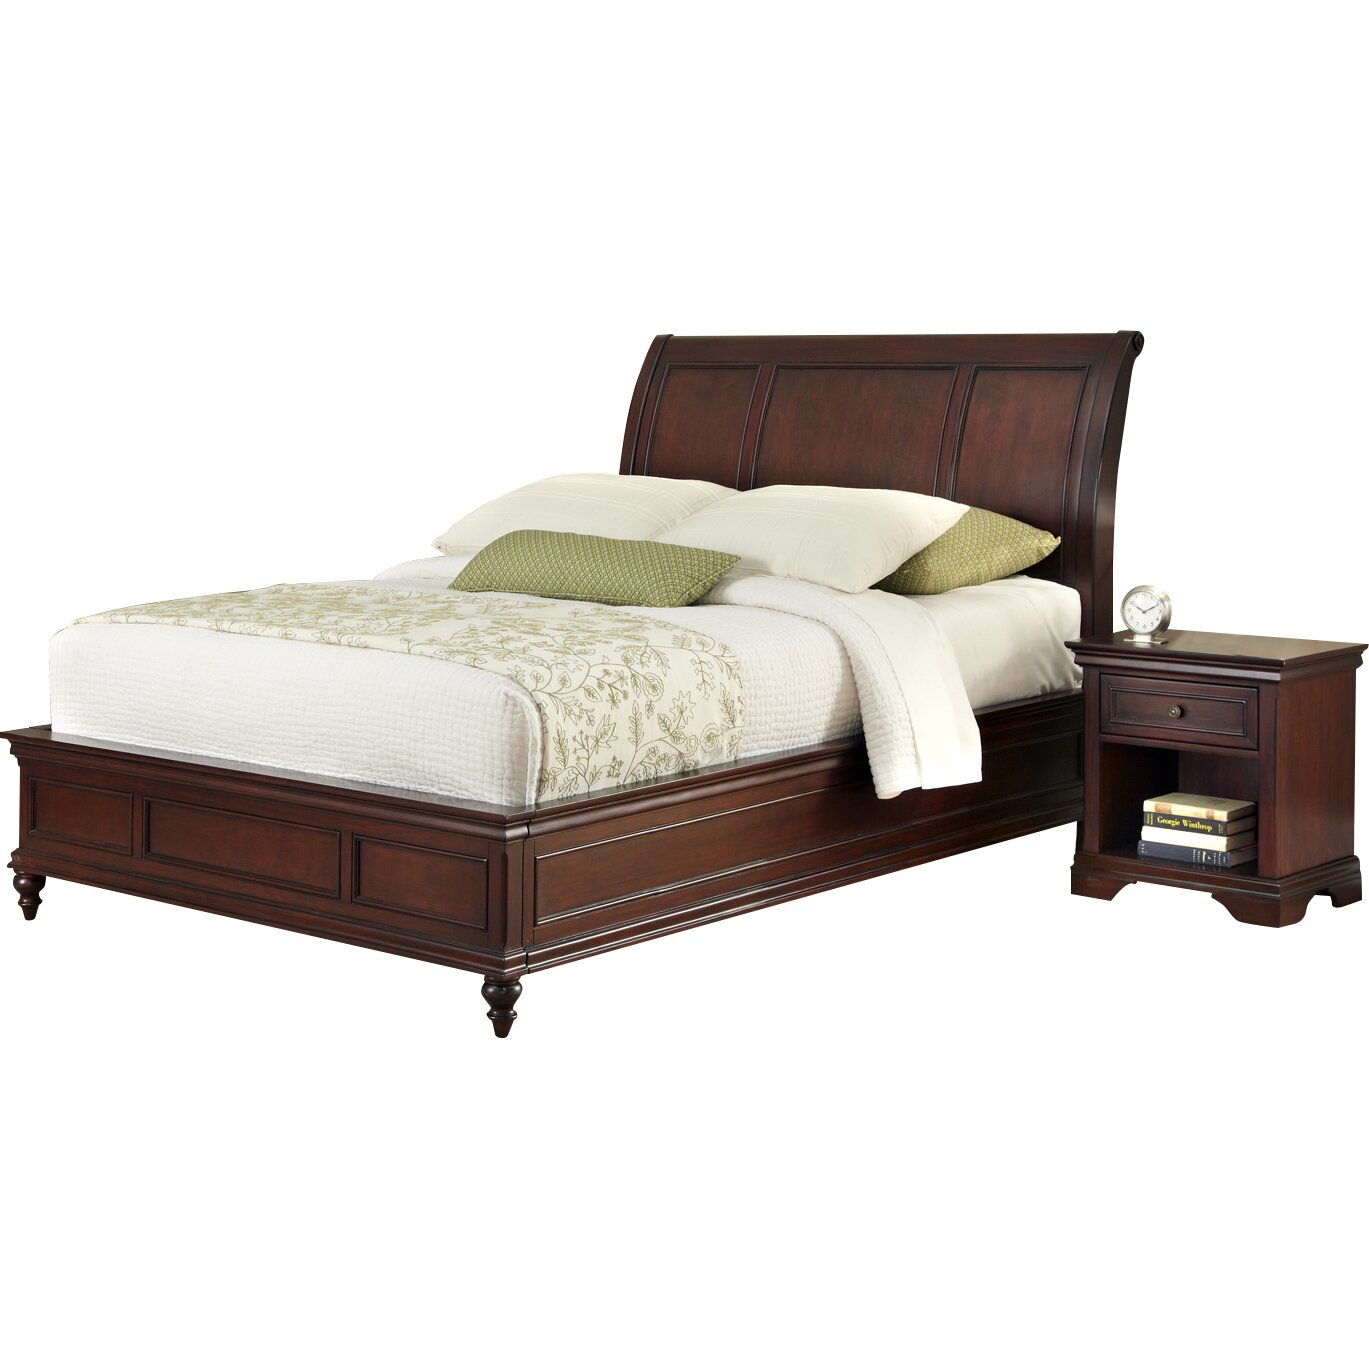 Darby home co linthicum platform 3 piece bedroom set for Bedroom 3 piece sets